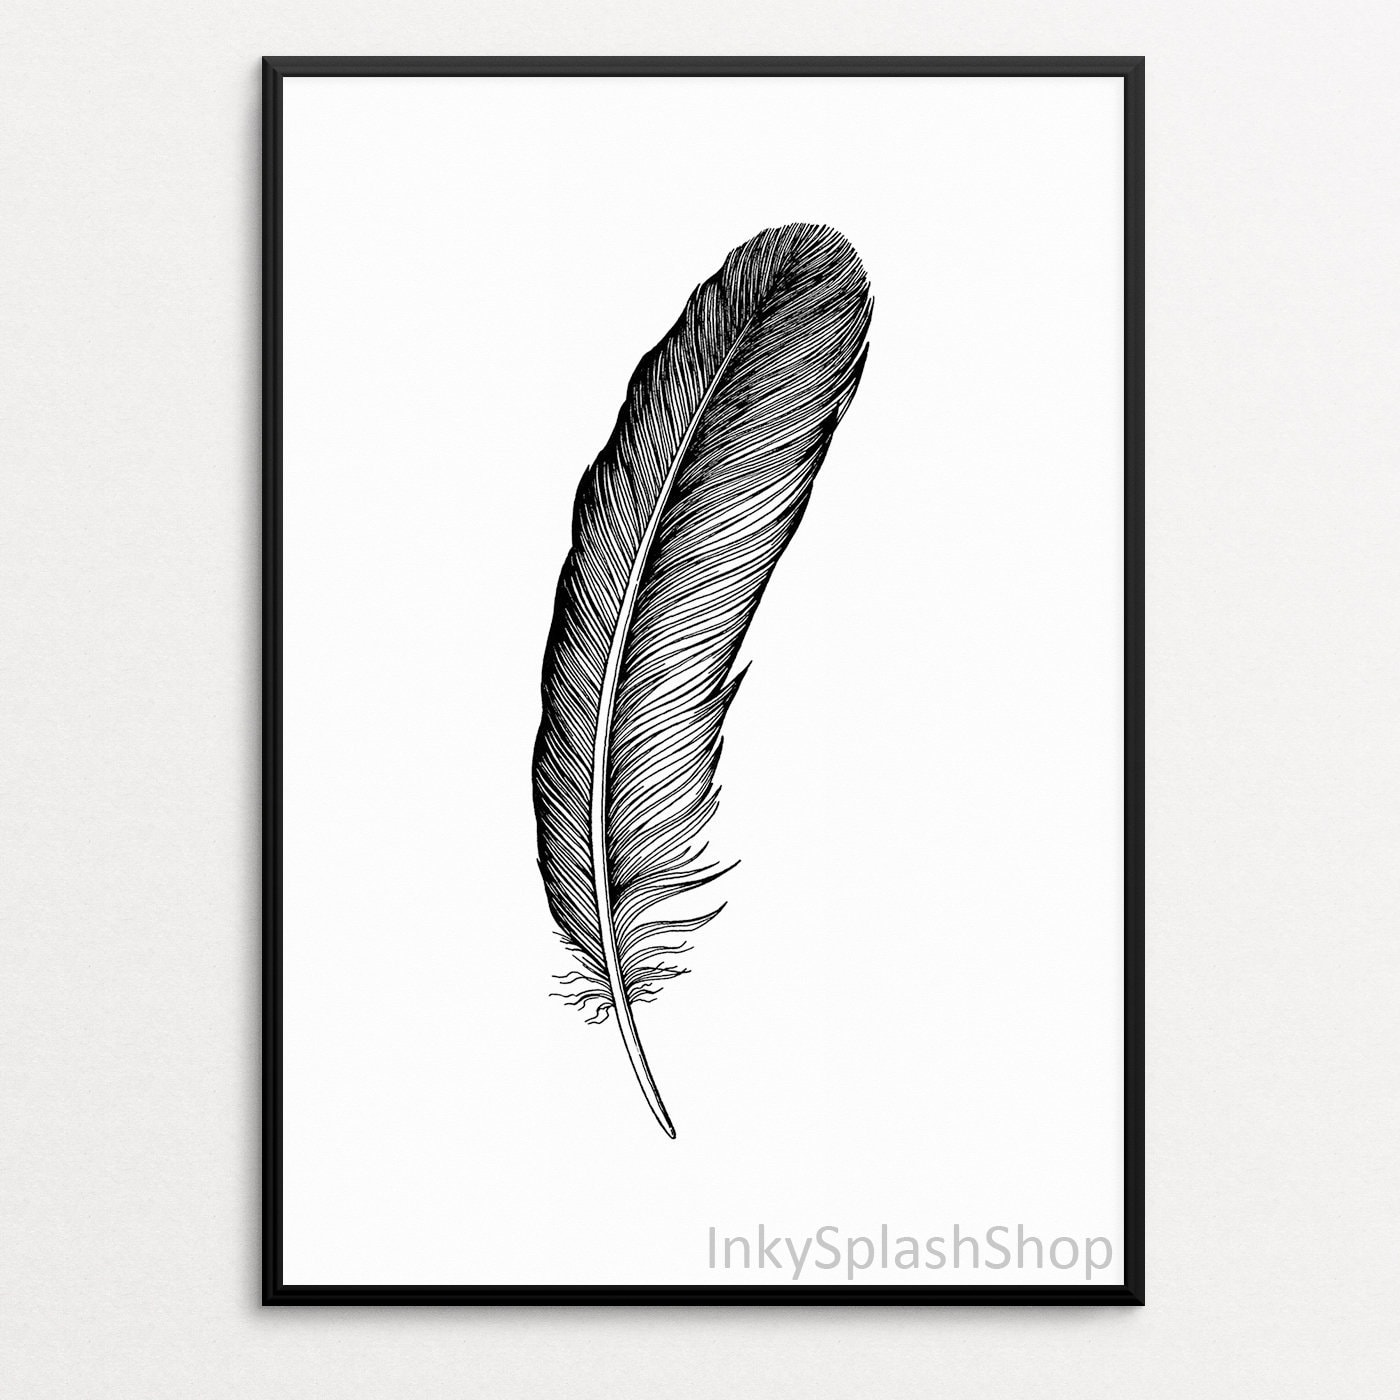 image about Feather Printable identified as Feather PRINTABLE artwork Boho Bed room wall decor Black Hen feather ink drawing Character print Rustic property decor Minimalist poster Down load